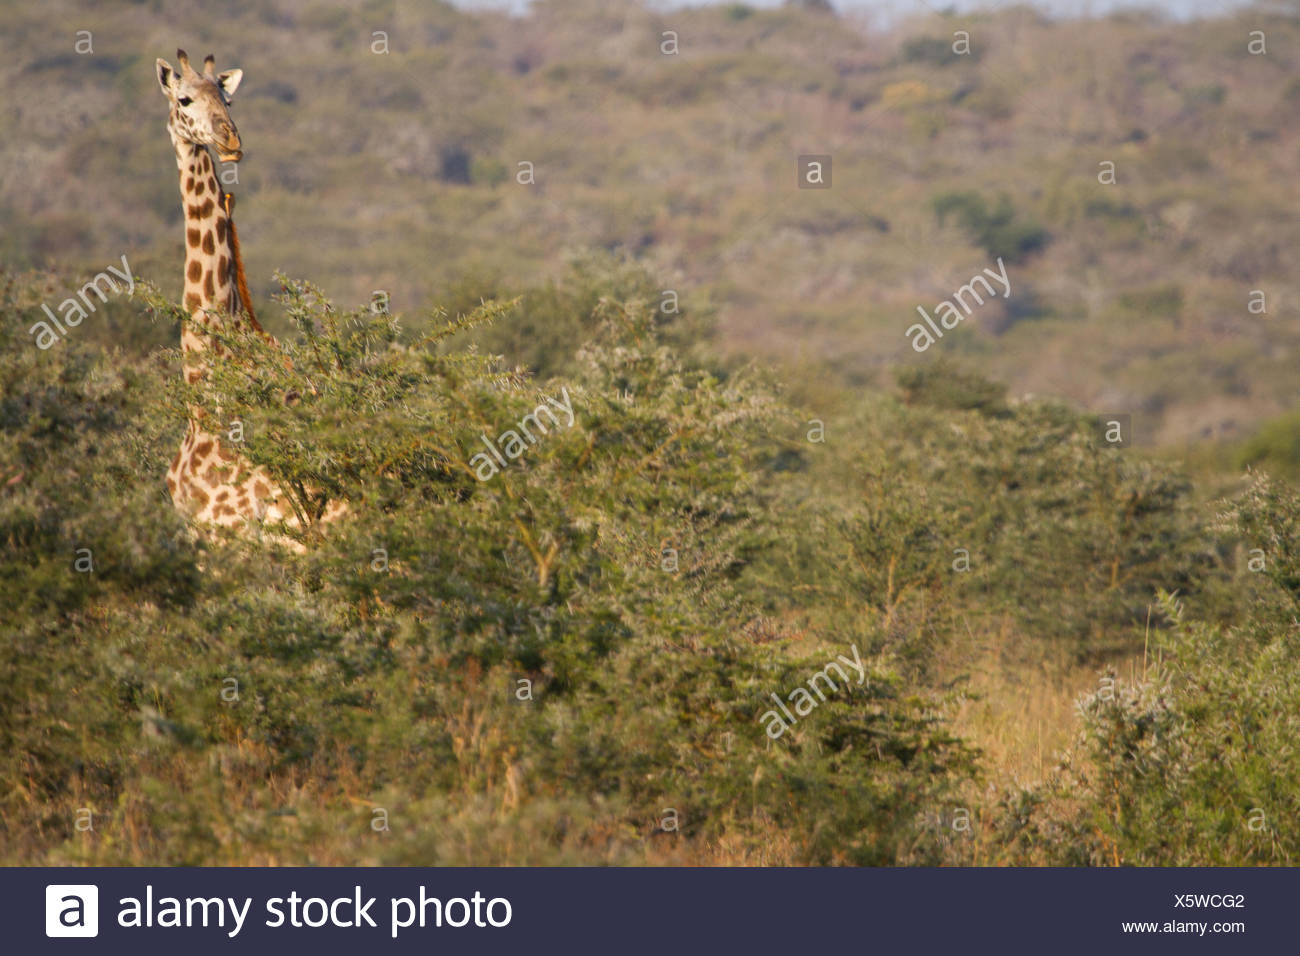 A giraffe, head above the tree tops on the Maasai steppe. - Stock Image